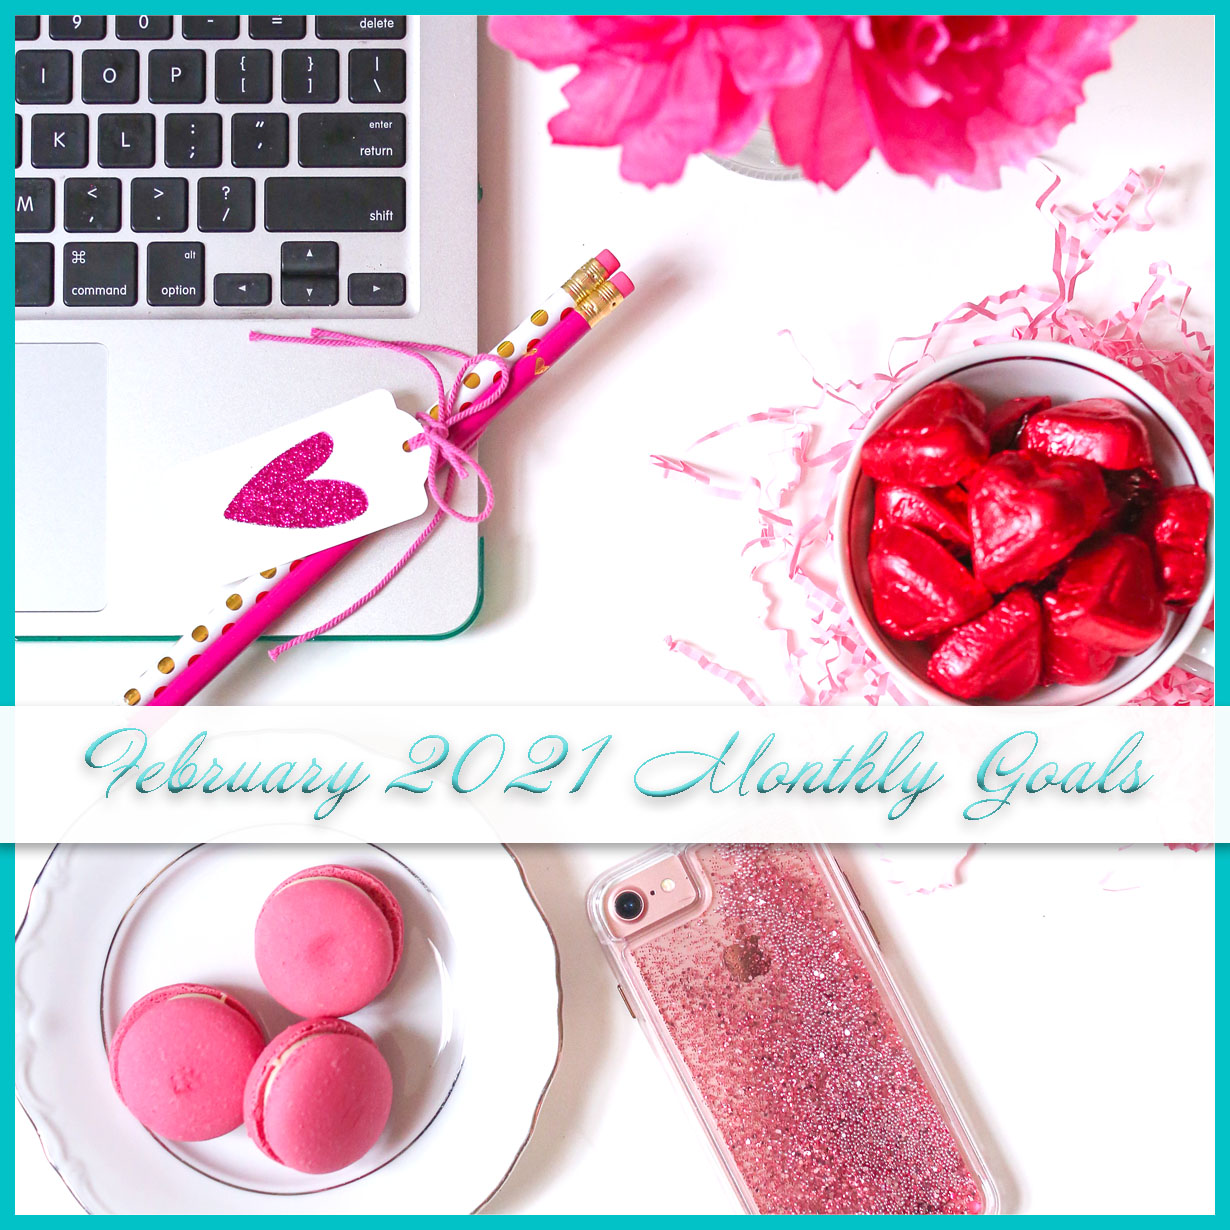 February 2021 Monthly Goals